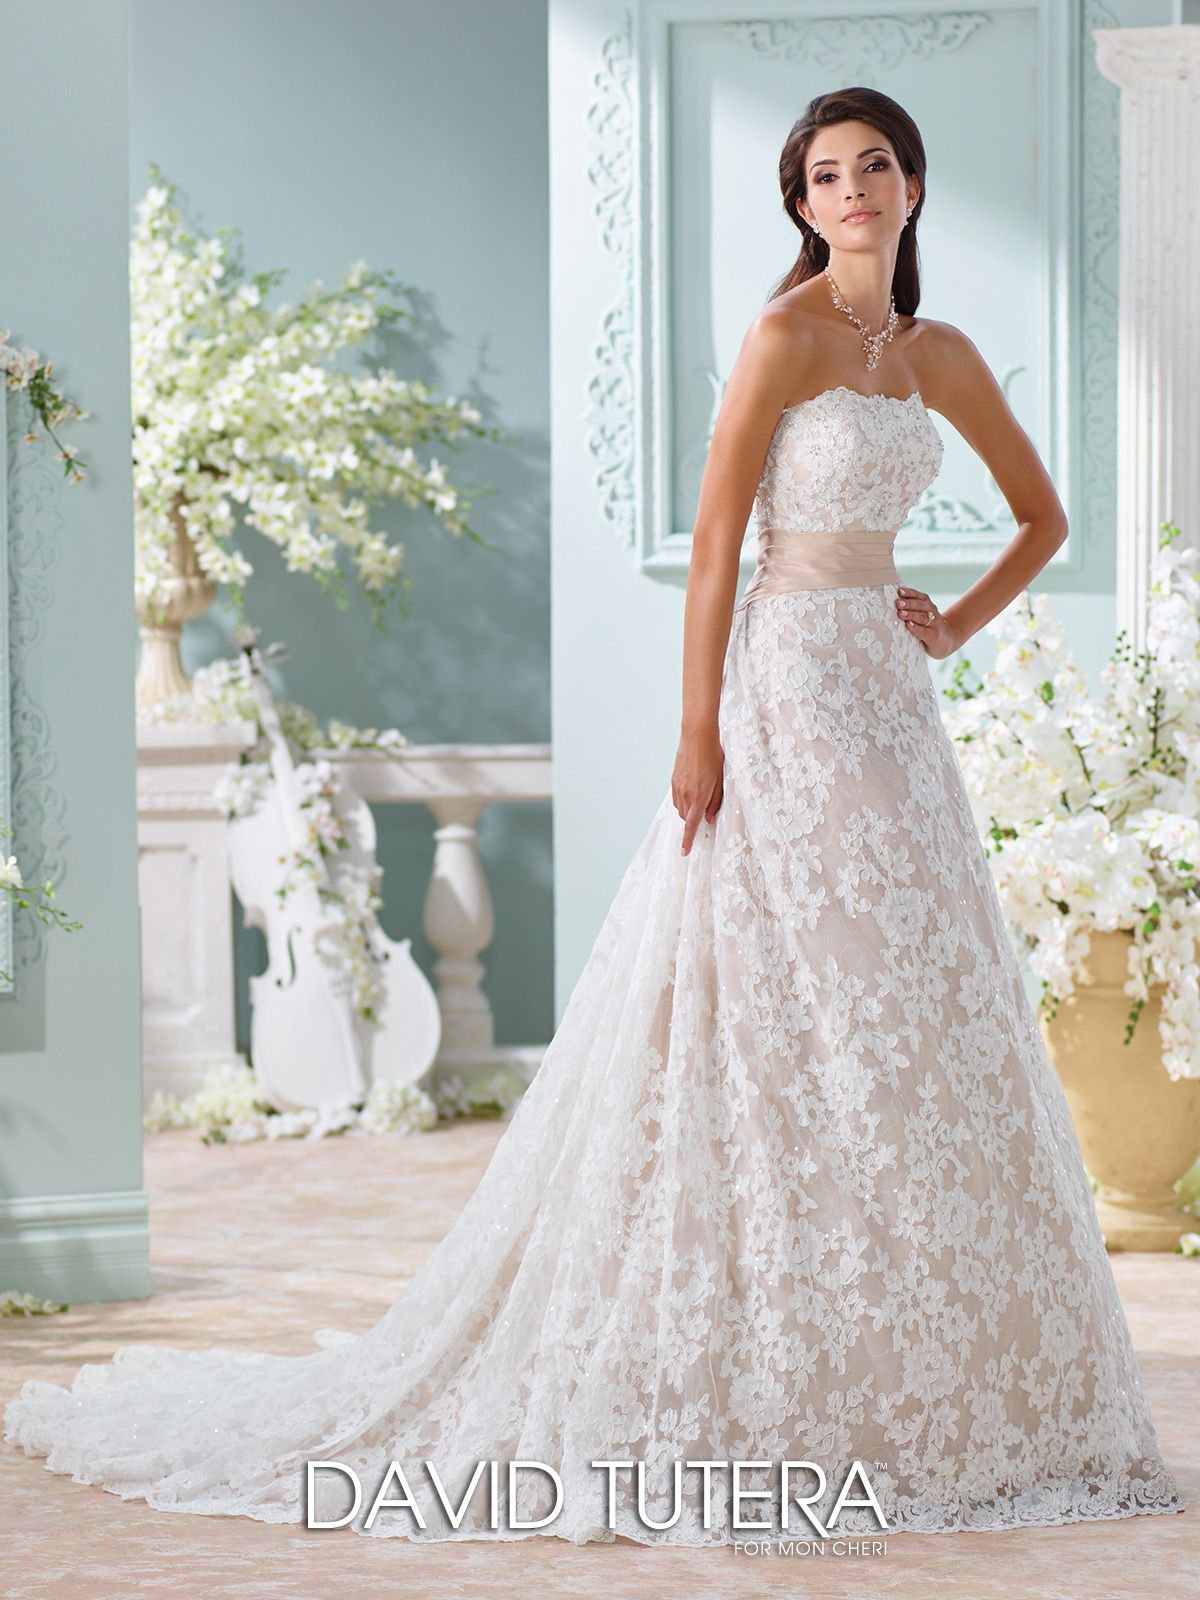 Unique wedding dresses fall 2018 martin thornburg aline wedding strapless allover lightly hand beaded alencon lace tulle and memory taffeta a line gown with scalloped lace neckline pleated taffeta natural waistband junglespirit Choice Image